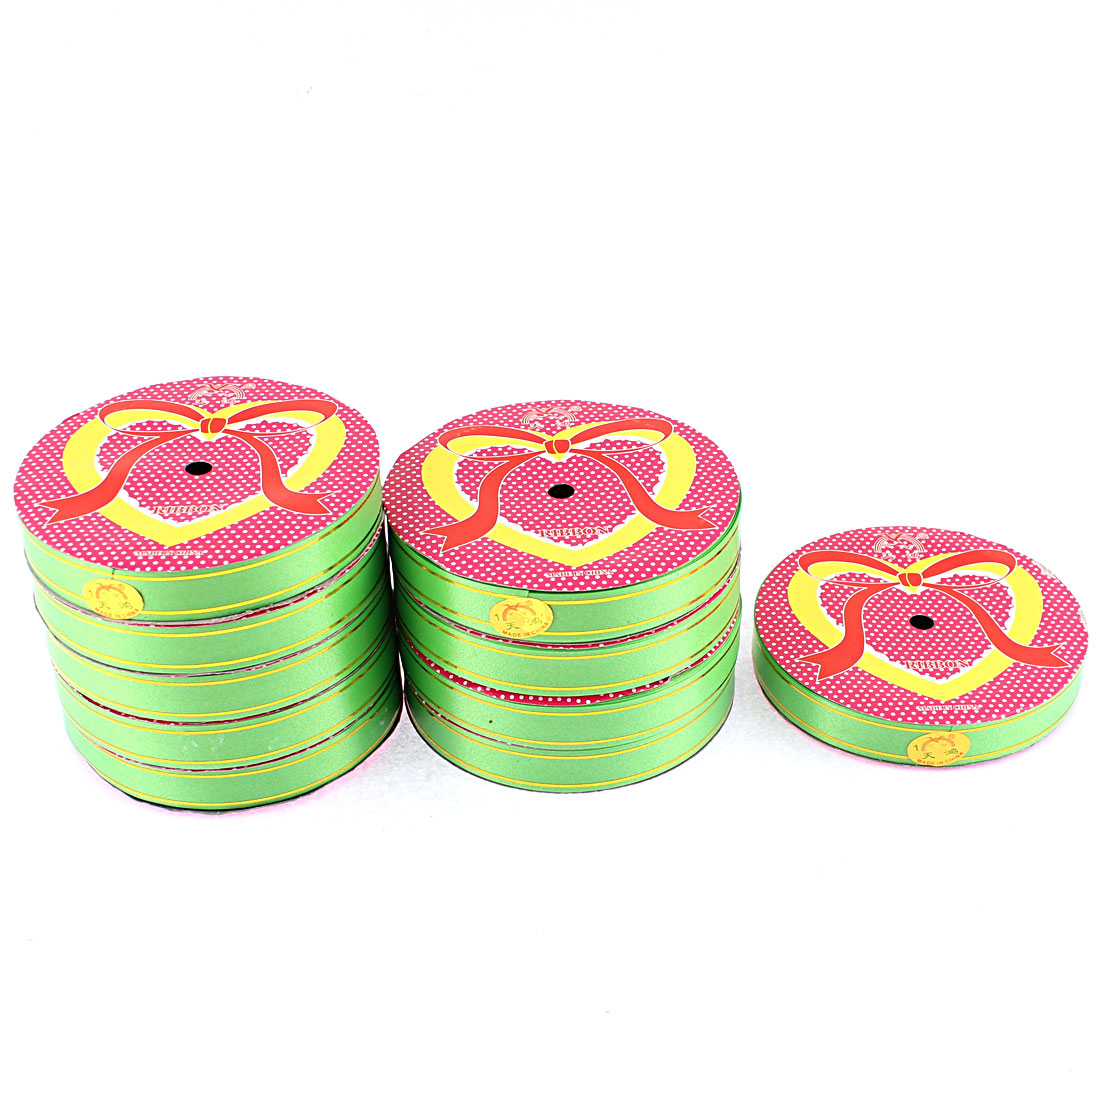 Wedding Festival Polyester Satin Ribbon Roll Tape Green 20m 22 Yards 10pcs